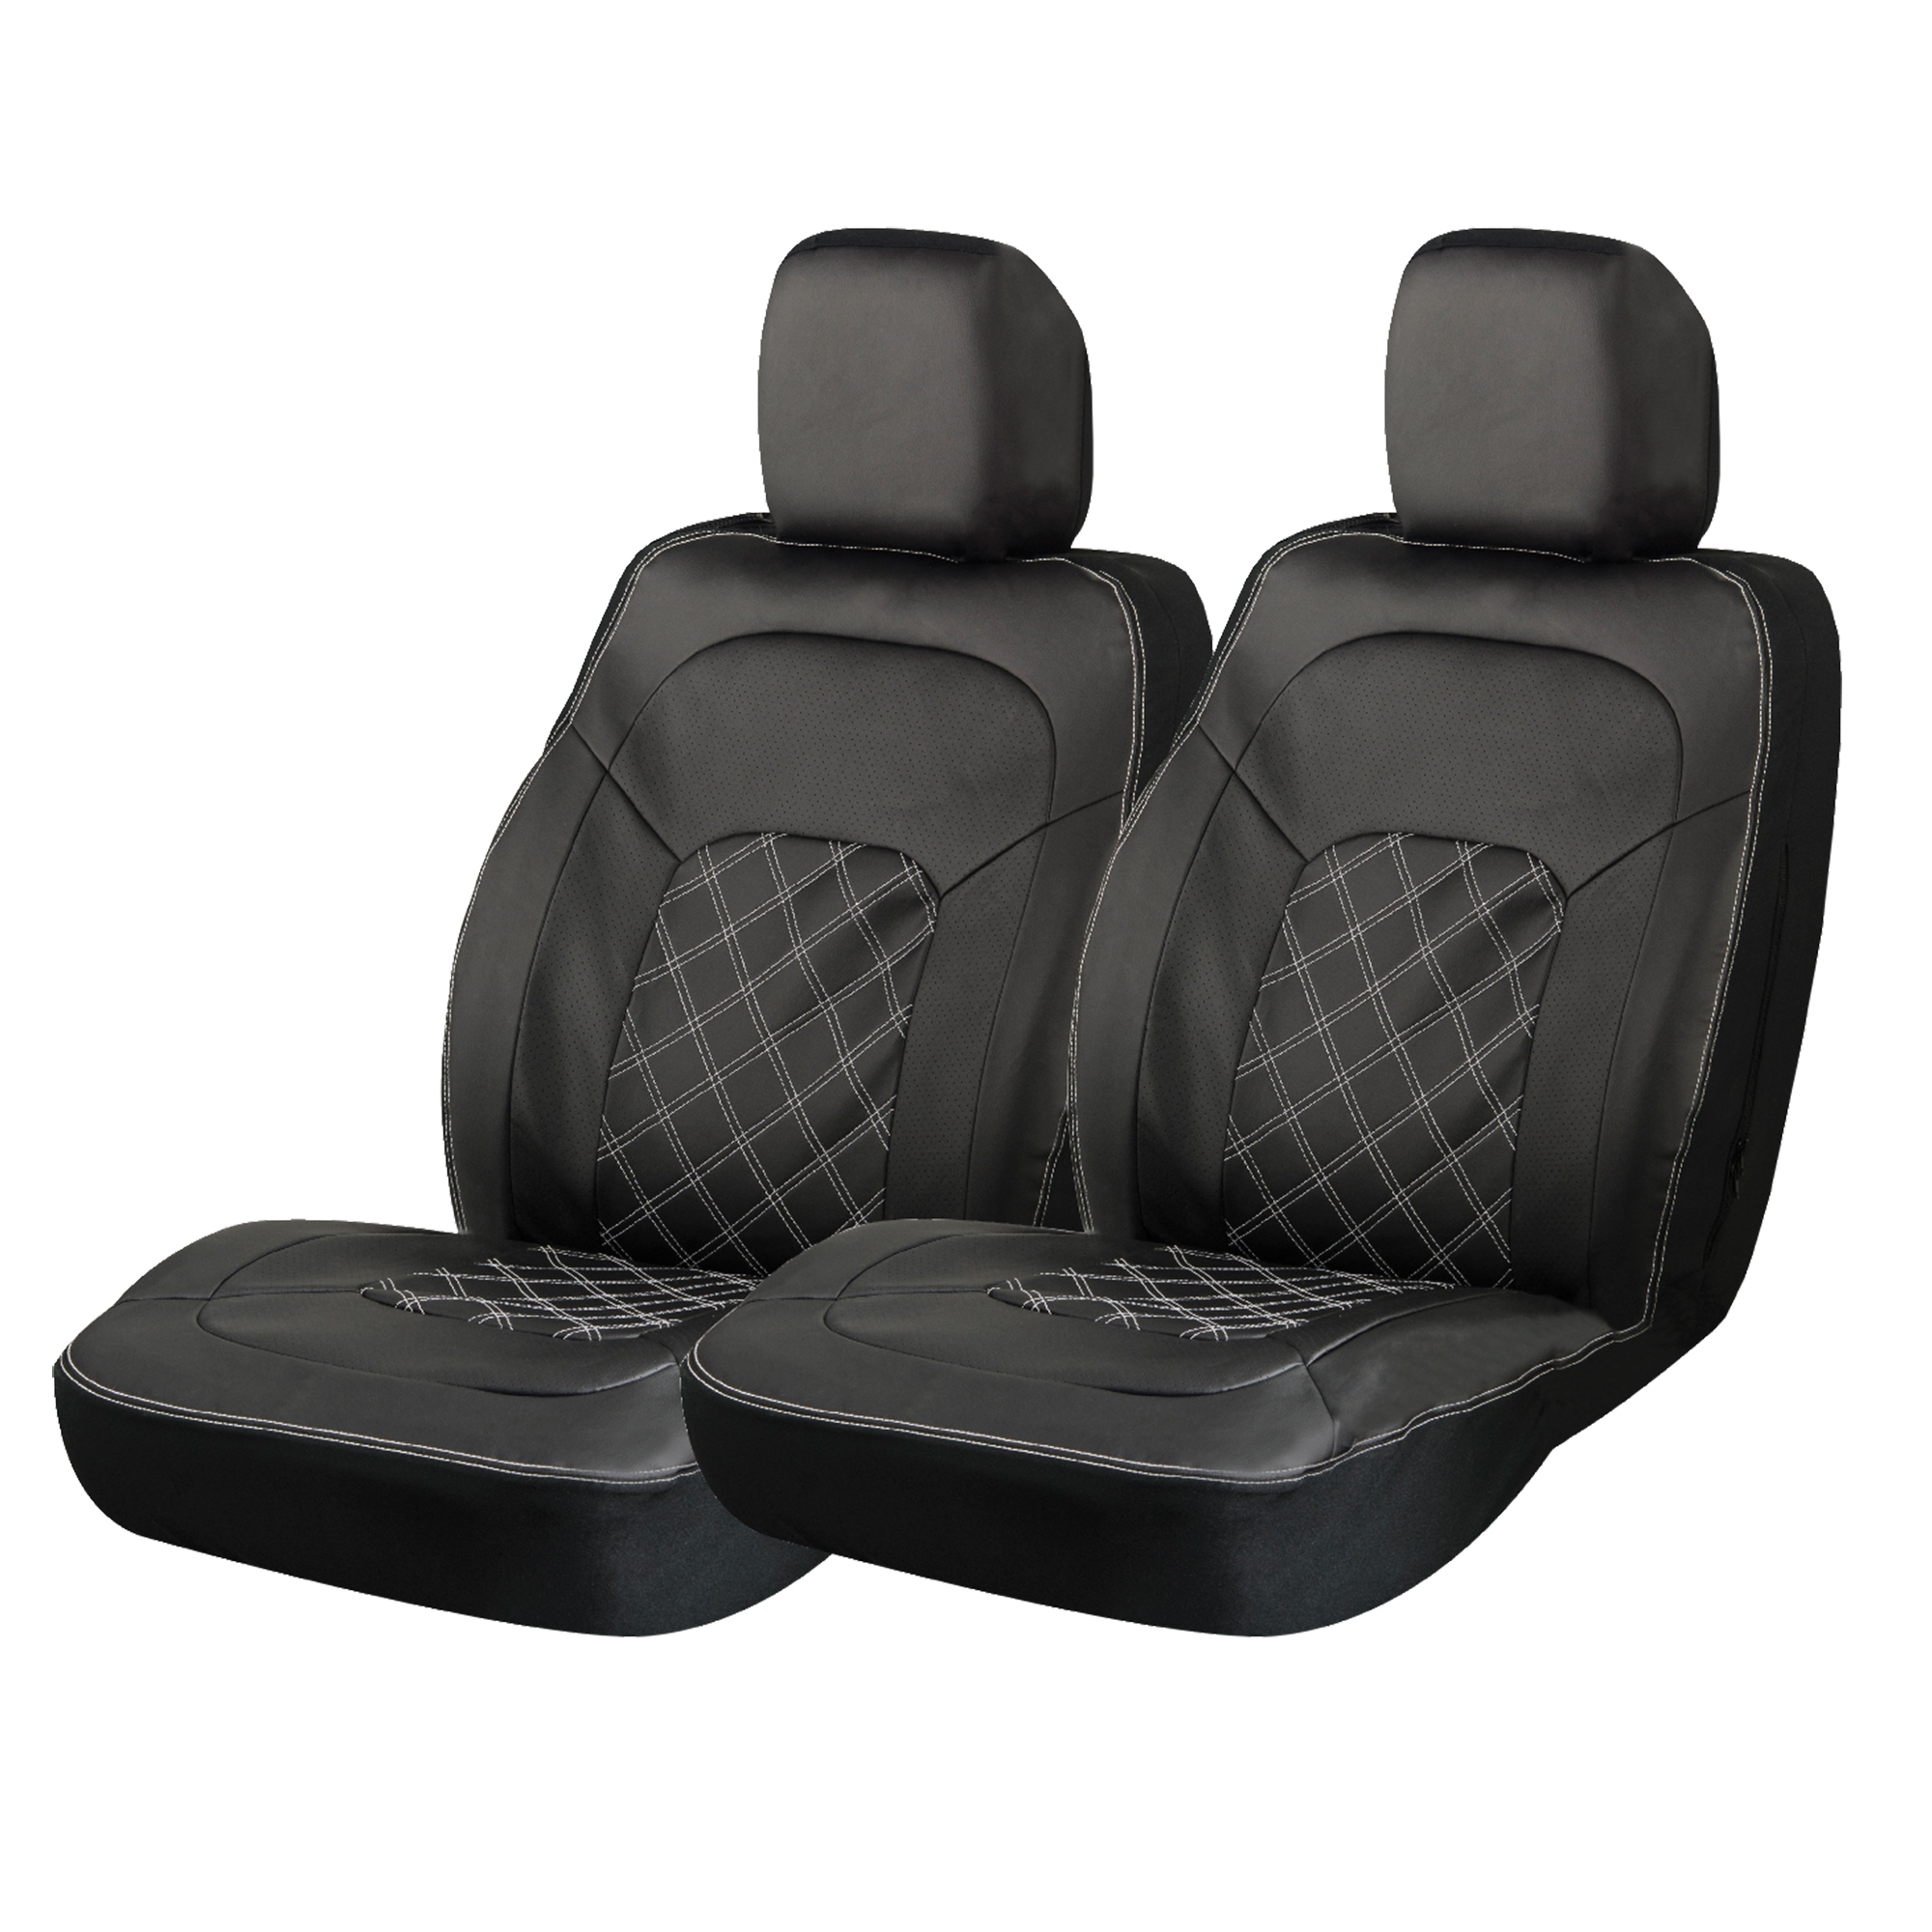 Black Diamond Truck Front Seat Cover  Leather Seat Covers